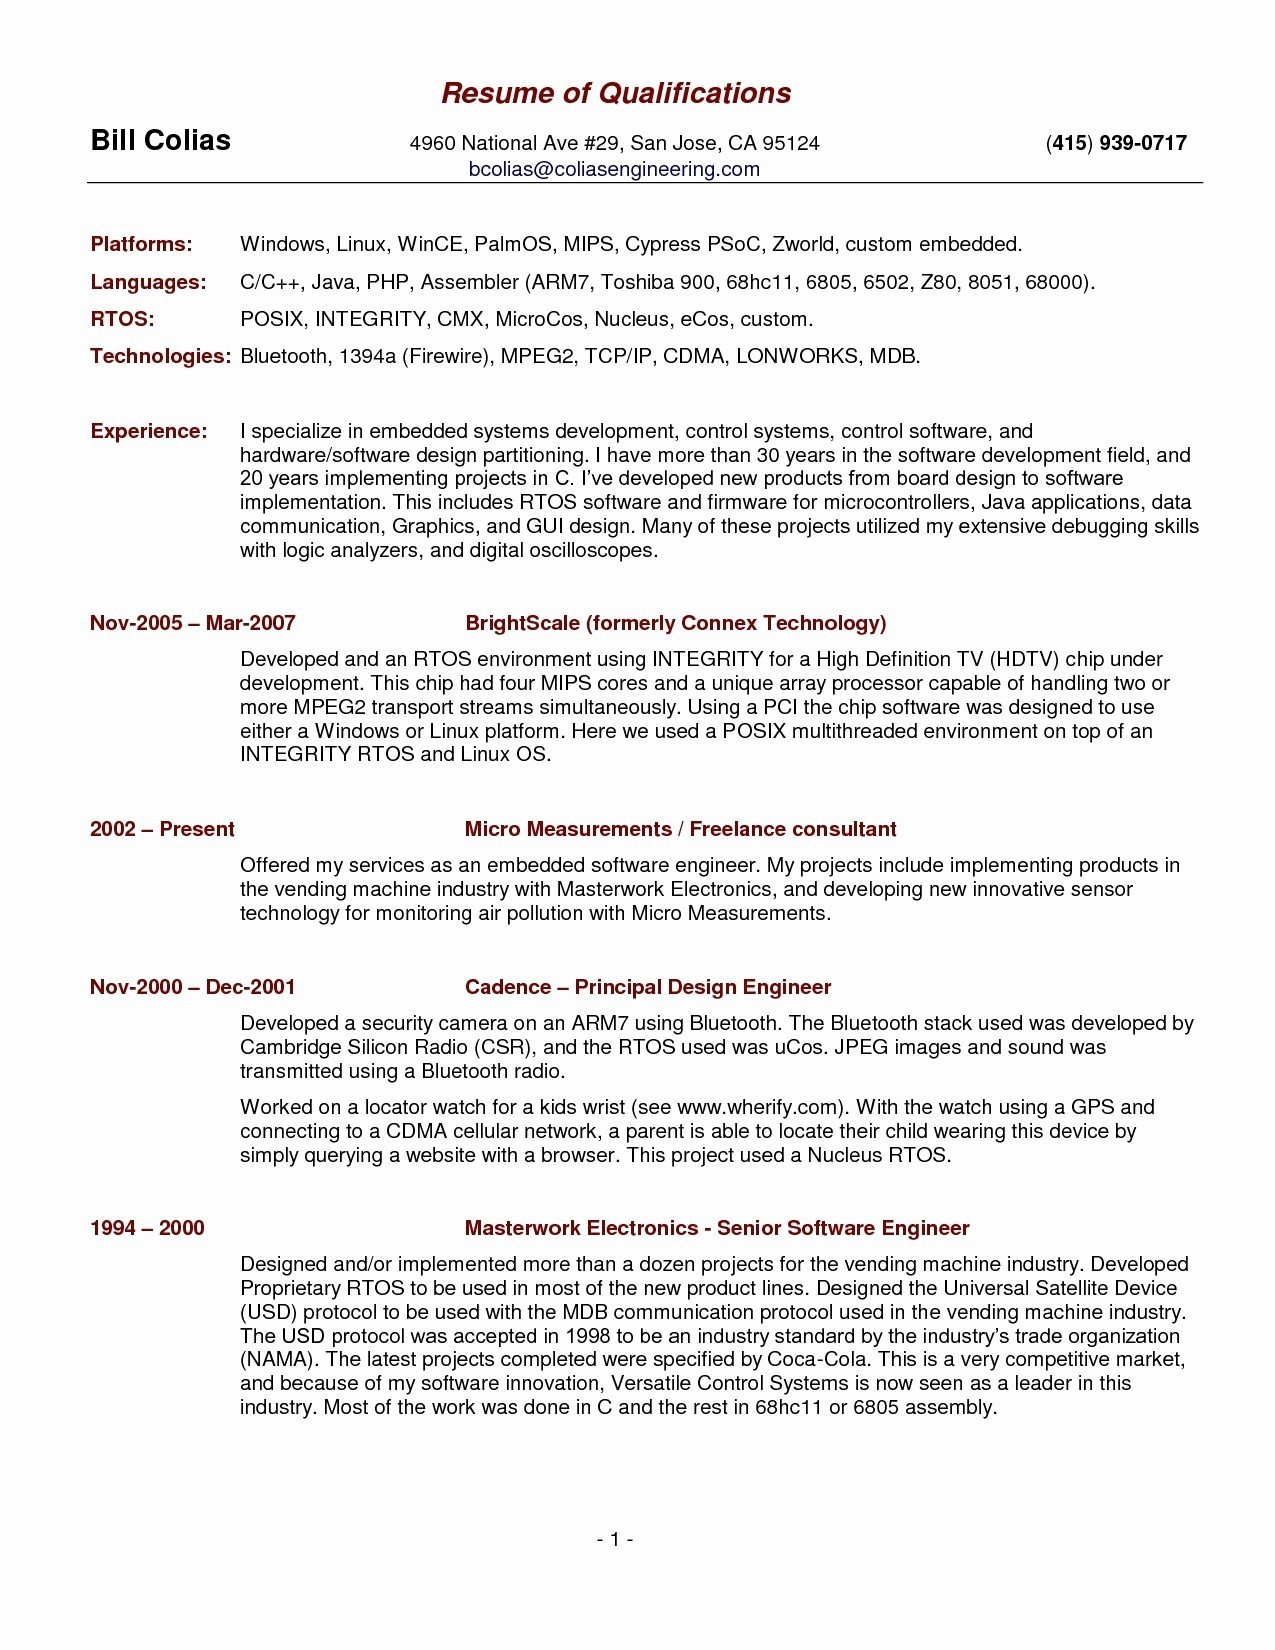 Graphic Resume Templates - Unique Resume Templates Free New Lovely Pr Resume Template Elegant